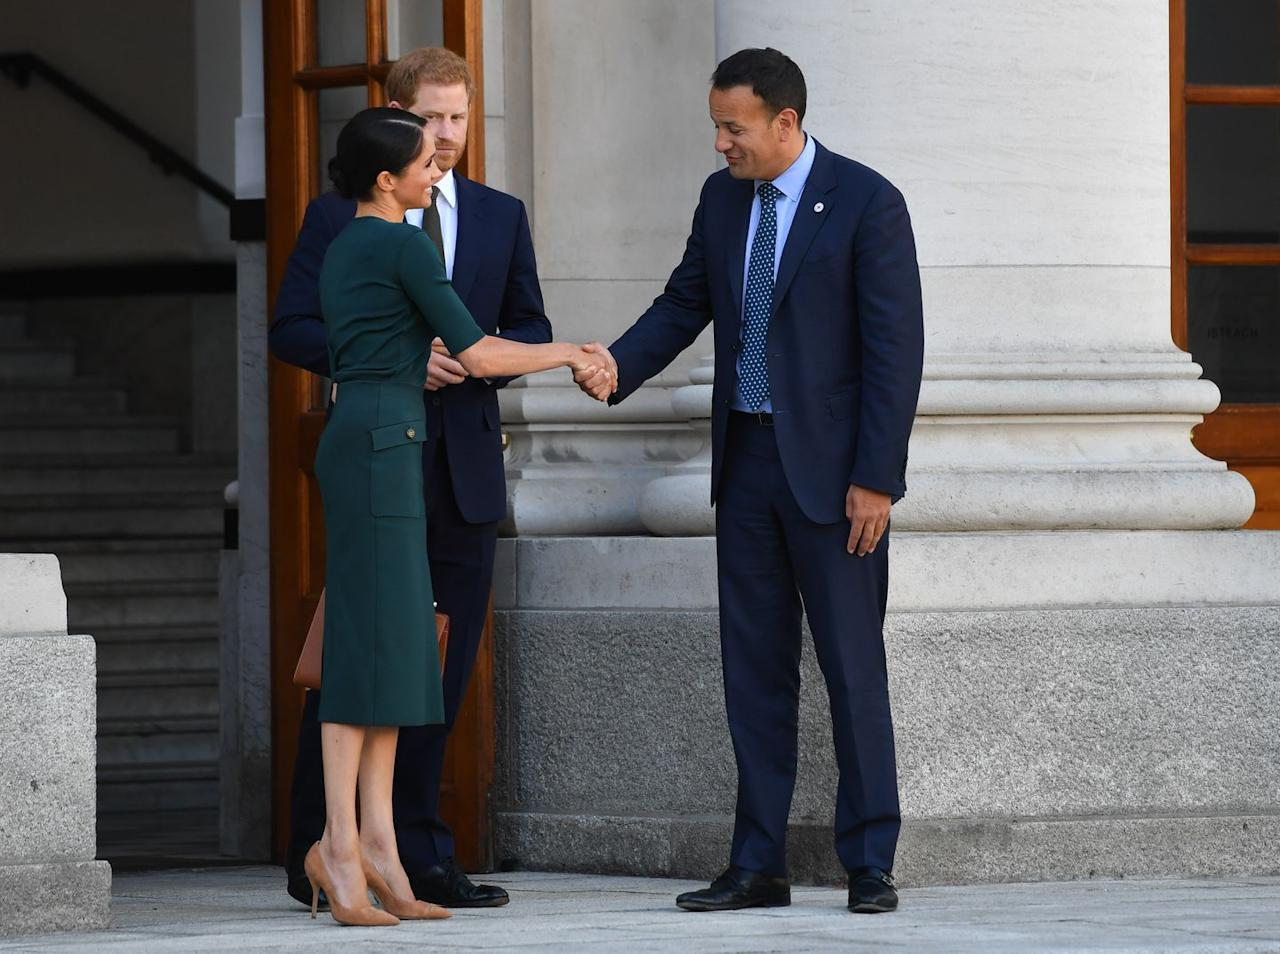 <p>Meeting the Taoiseach (Prime Minister) Leo Varadkar shortly after arriving in Dublin.</p>